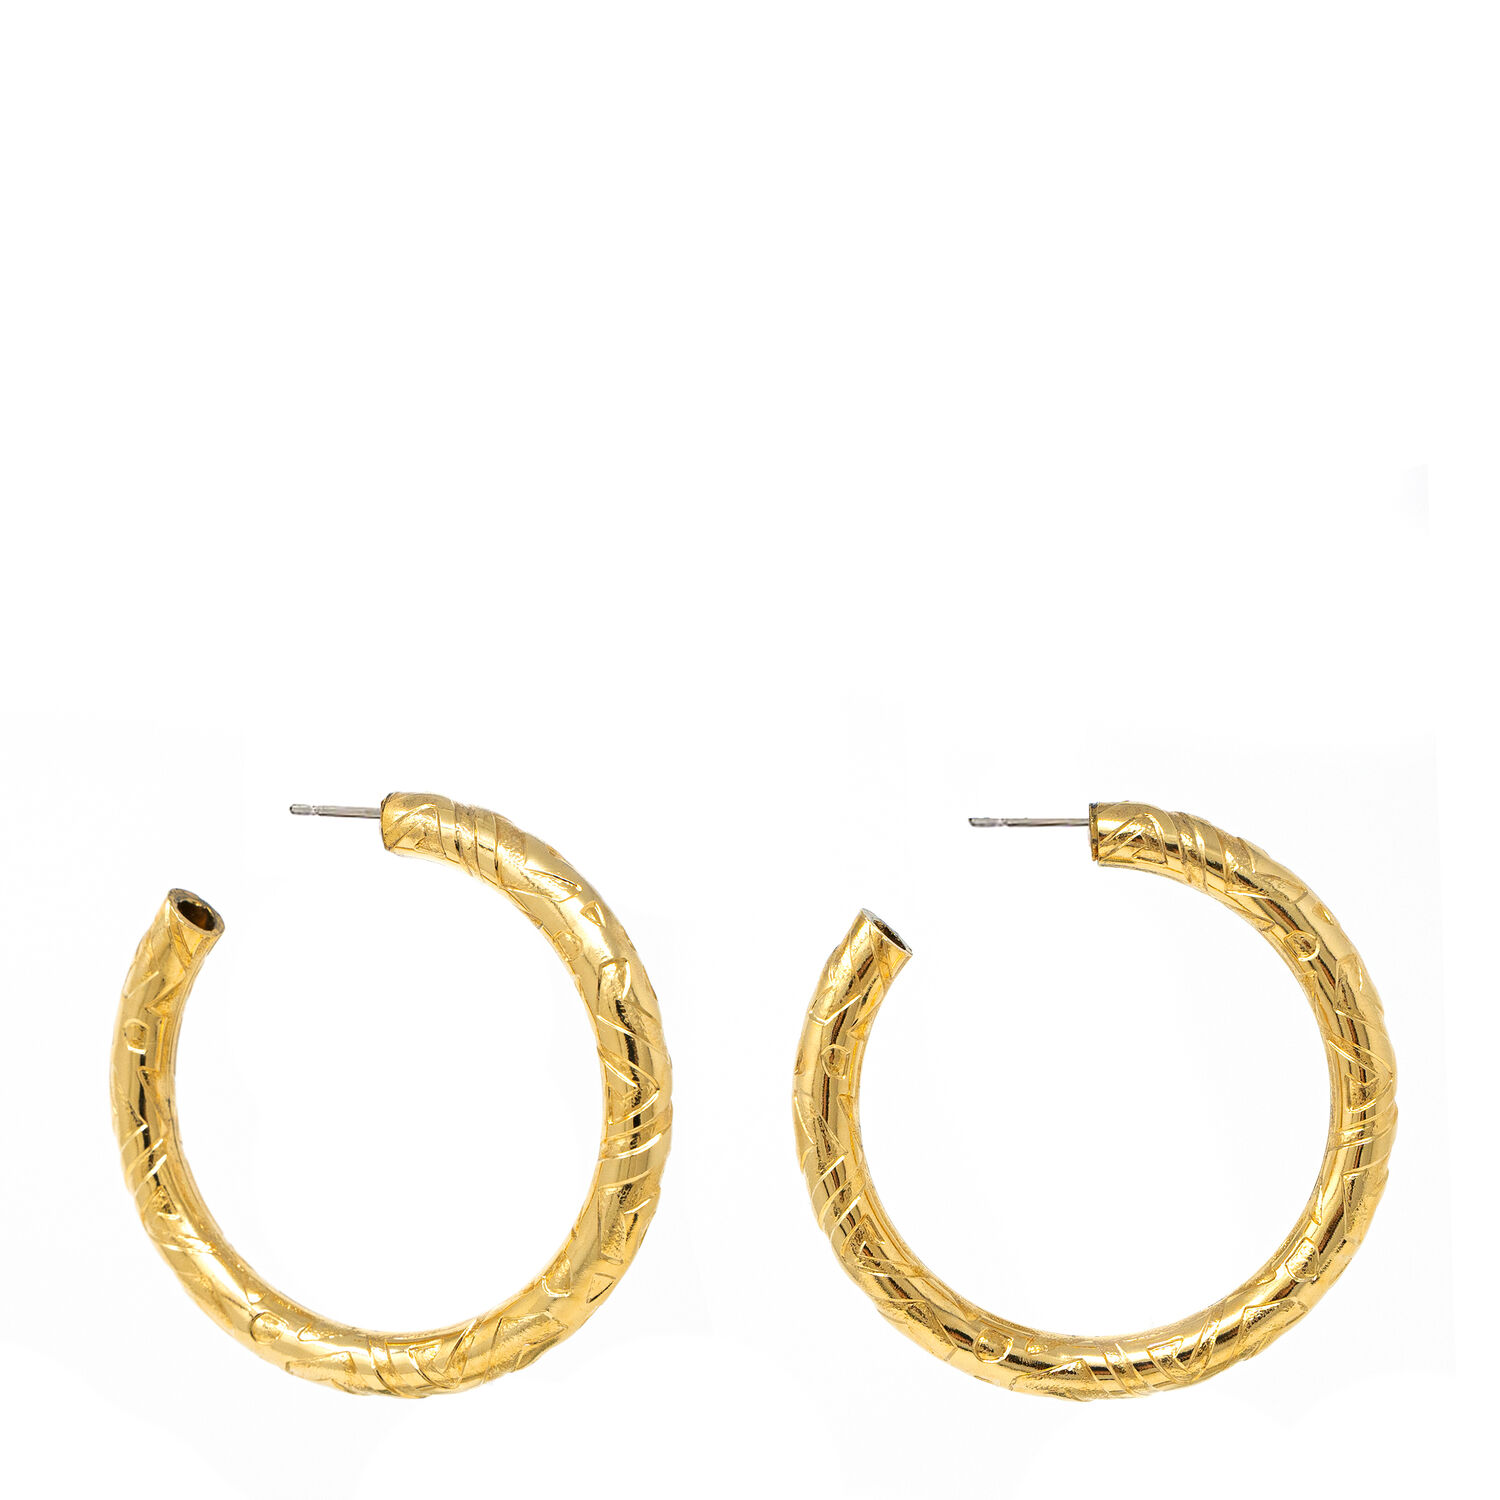 Etched Gold Hoop